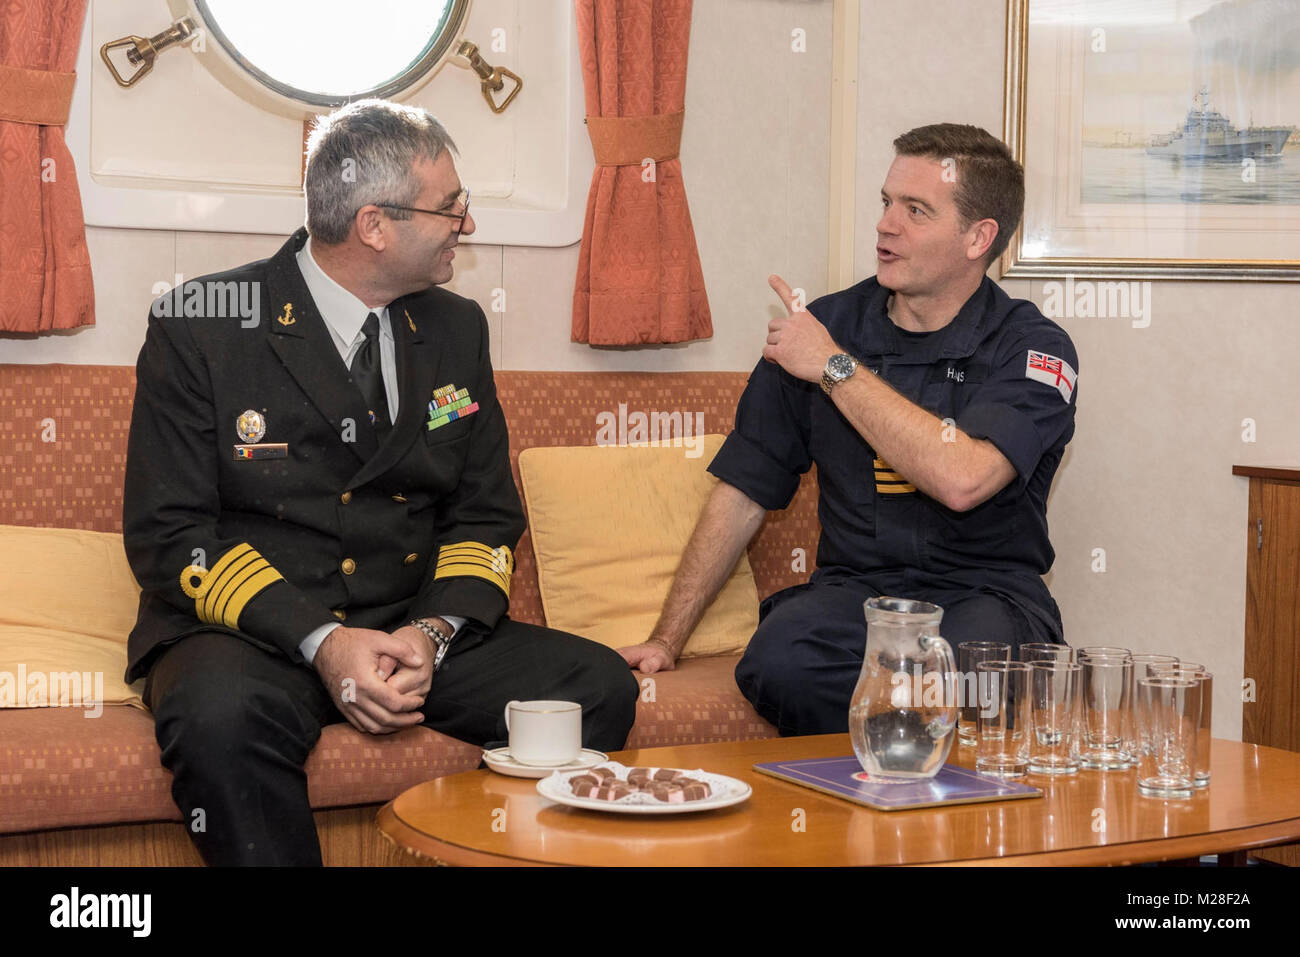 CONSTANTA, Romania, Feb 1. 2018 SNMCMG2 Commander, Justin Hains speaks with leadership from the Romanian Navy Hydrographic Stock Photo